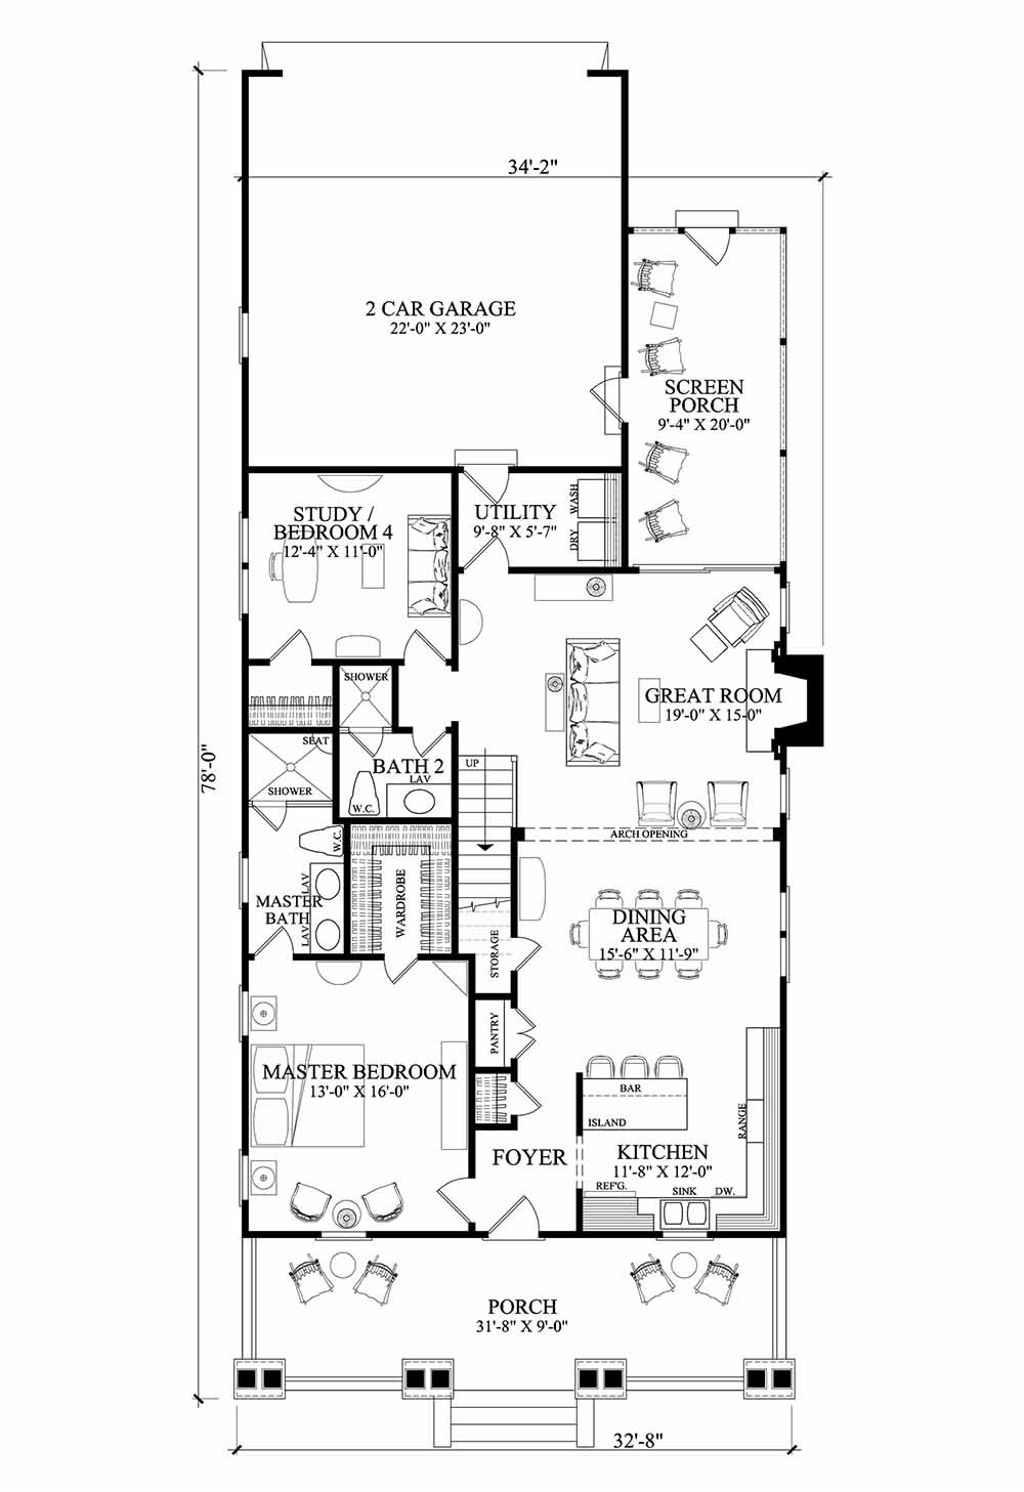 Craftsman Style House Plan 4 Beds 3 Baths 1928 Sq Ft